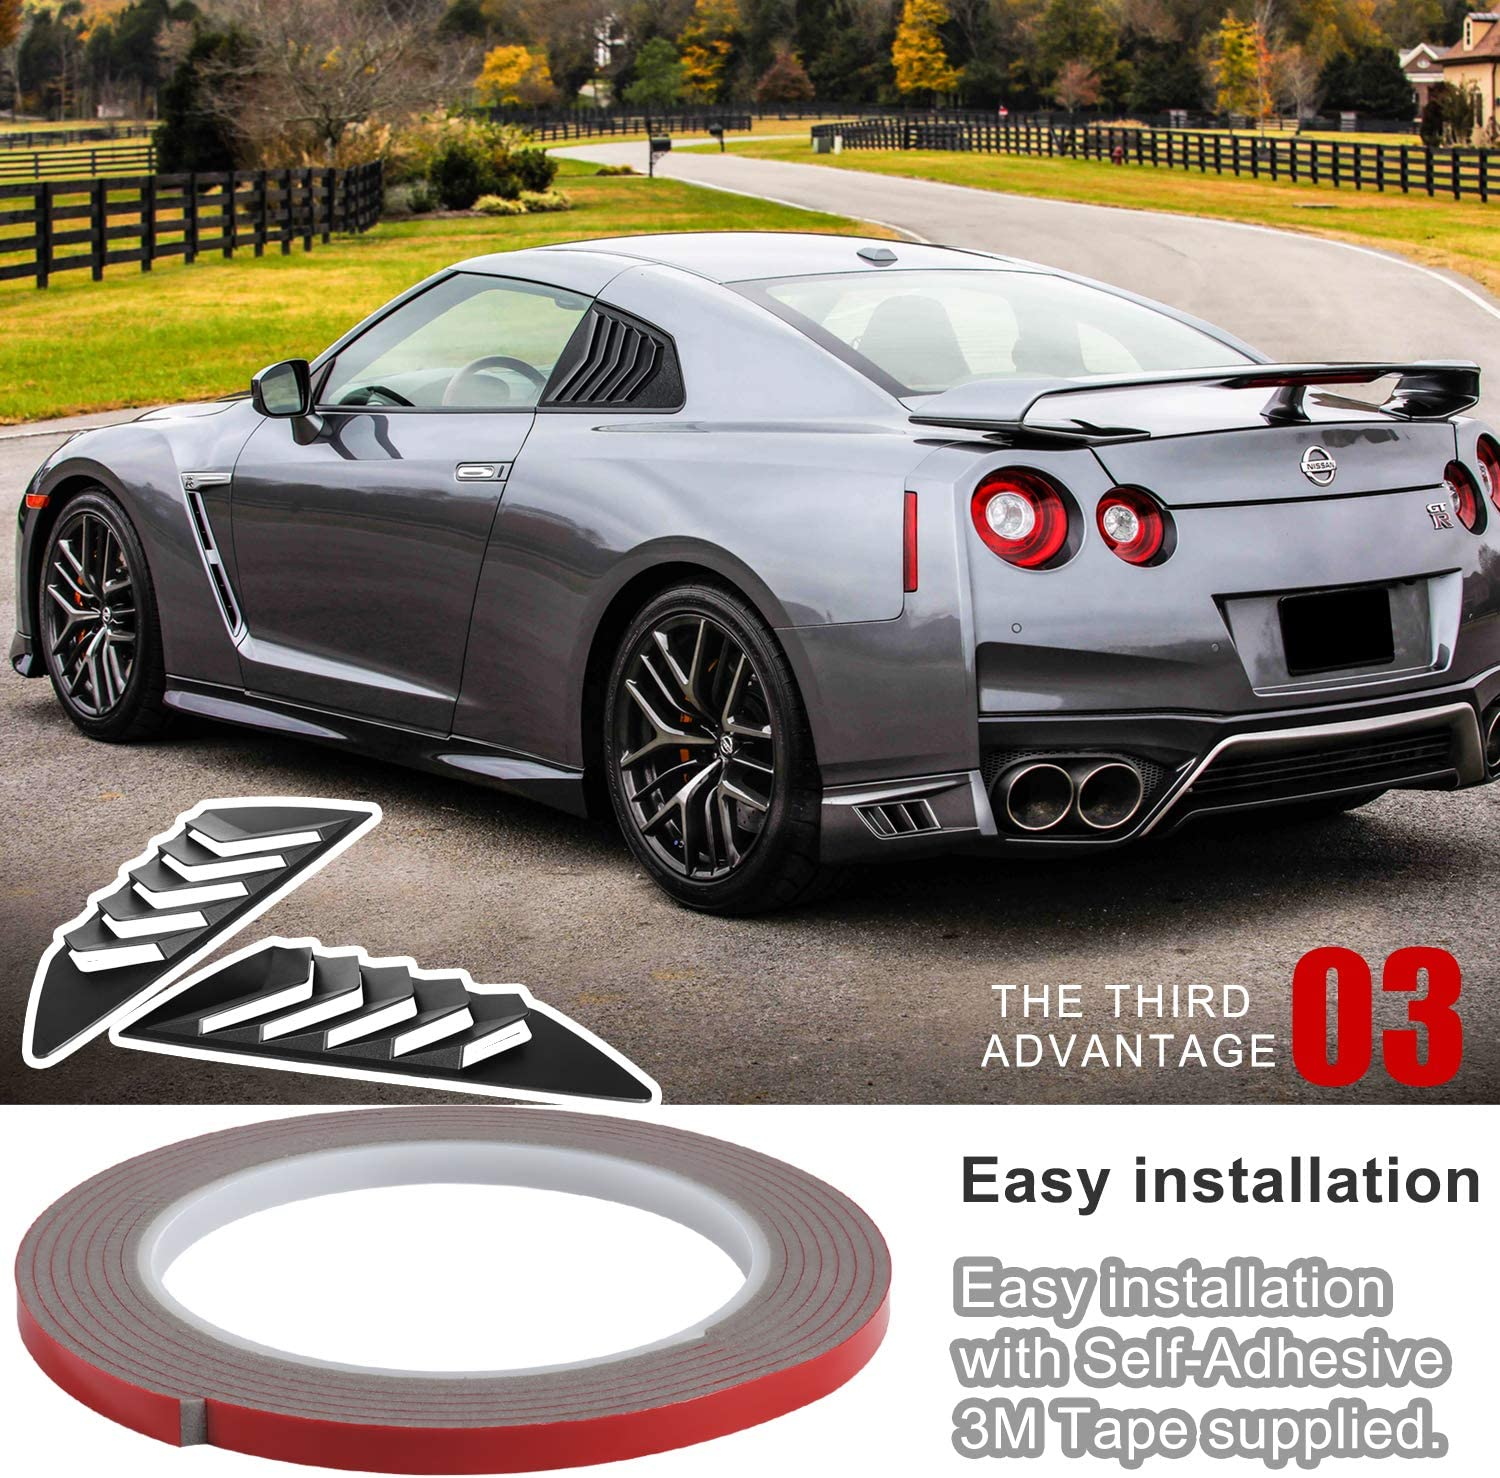 2 PCs Side Window Louvers ABS Air Vent Scoop Shades Cover Blinds Fit for 2008-2017 Nissan R35 GTR GT-R